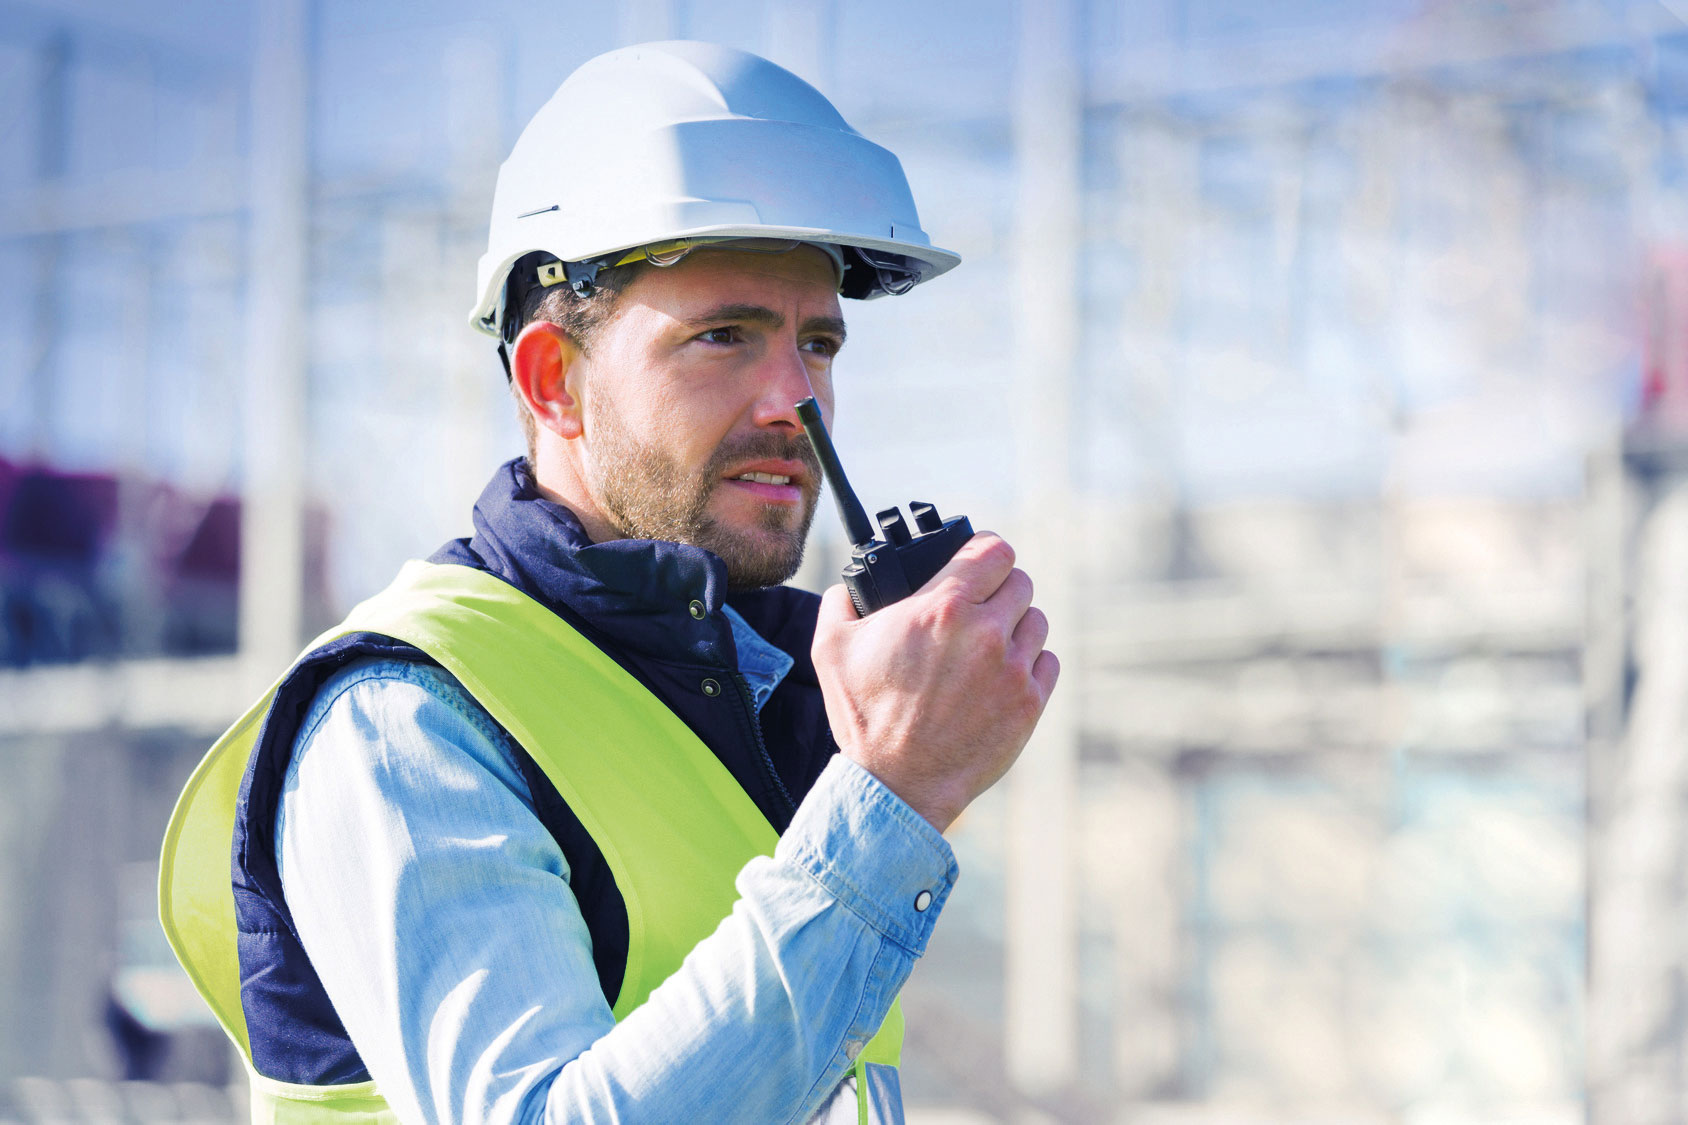 Image: CONET UC Radio Suite for Utilities - Worker with handheld Radio